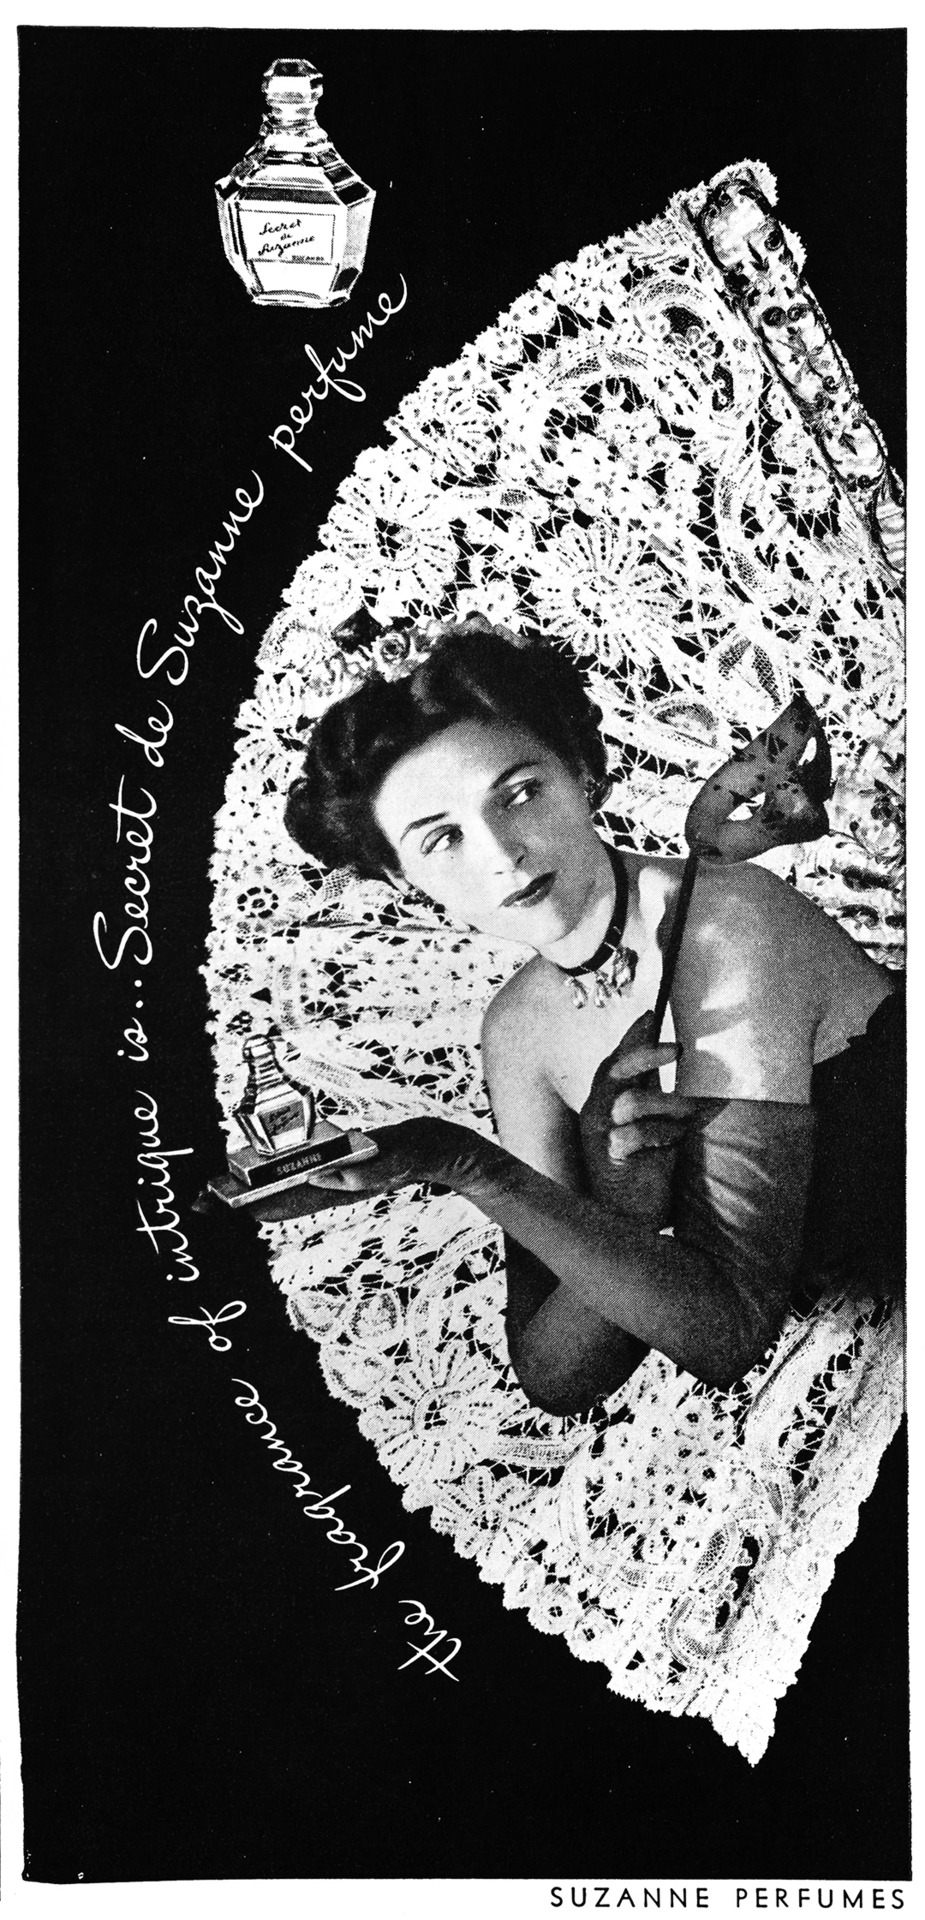 Suzanne Perfumes Advertisement - Gourmet: November 1945